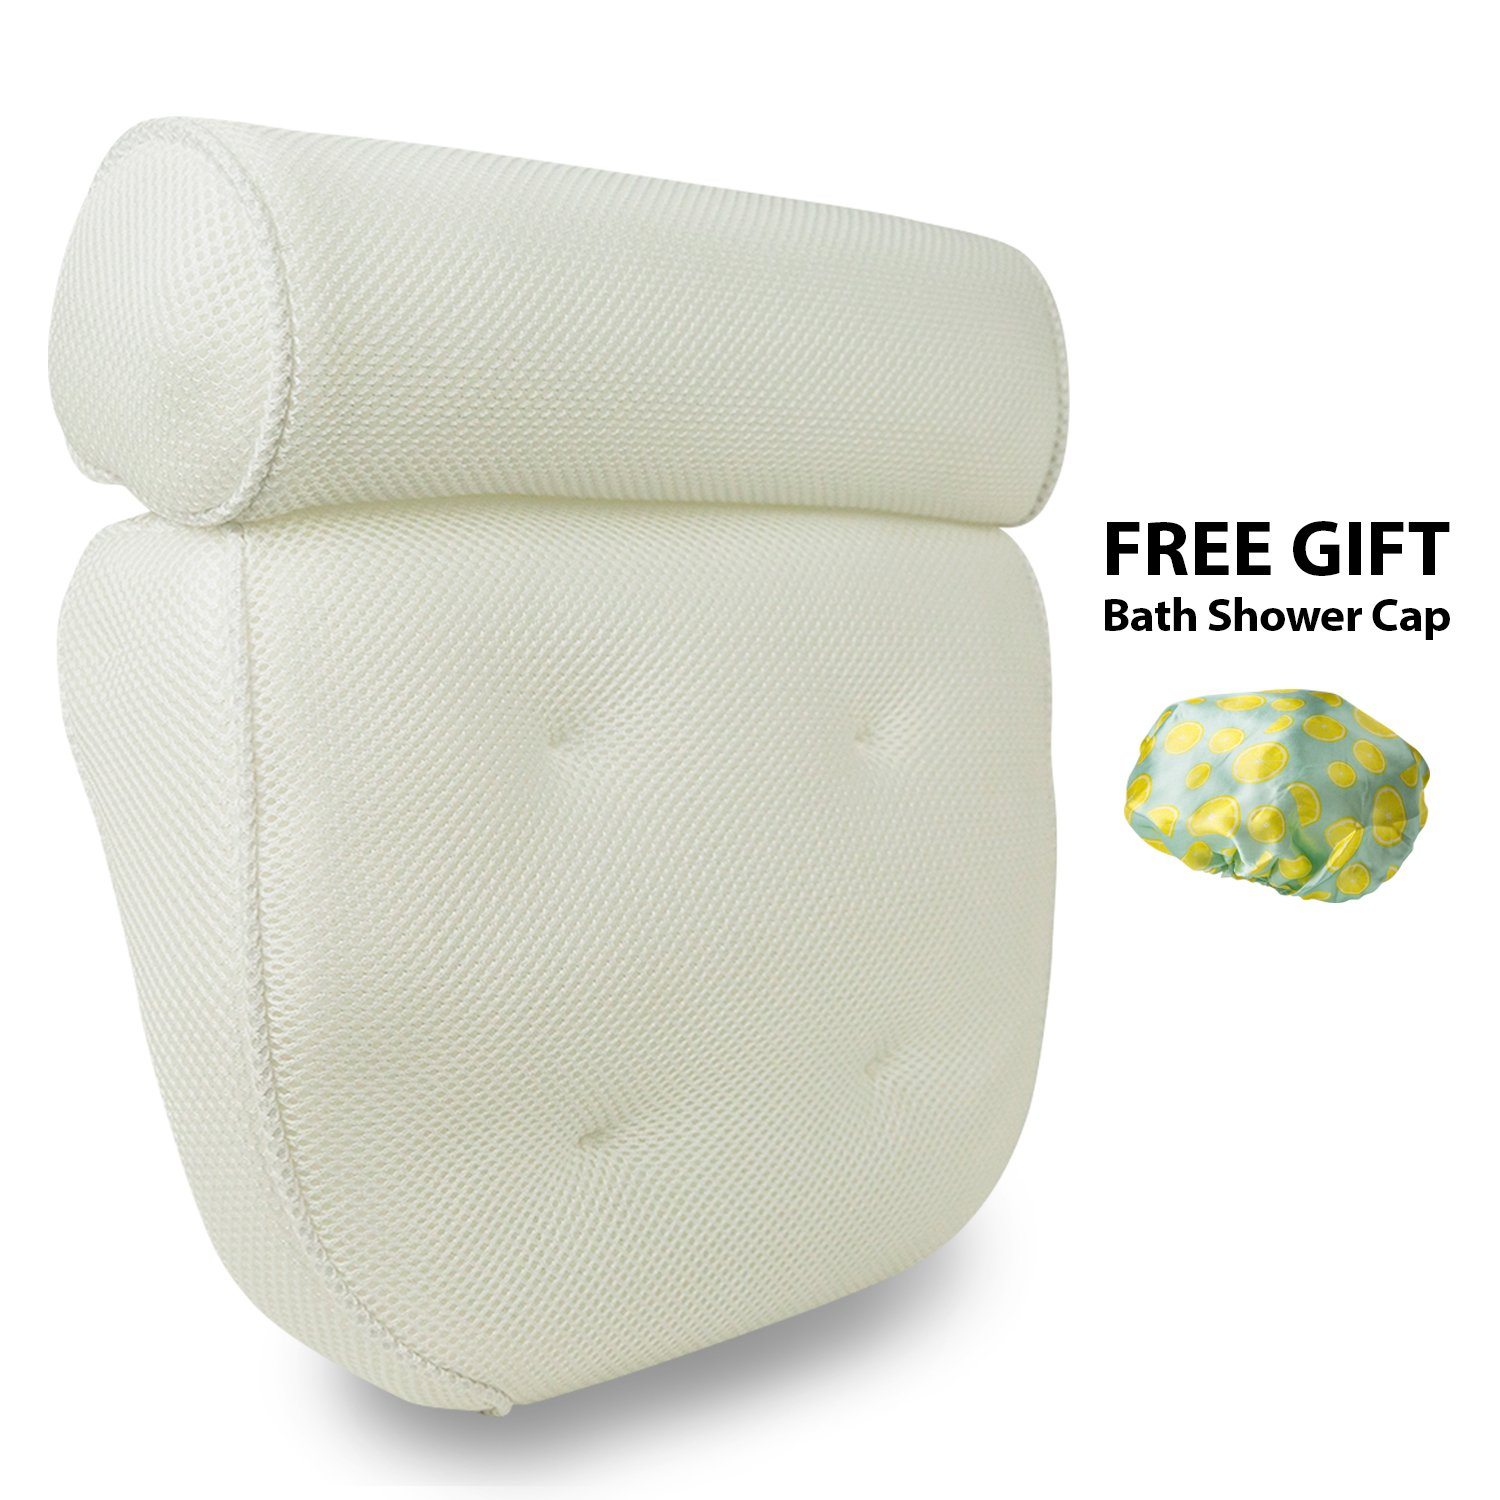 Happykoti Luxury Bath Pillow with FREE Shower Cap, Extra Large 6 Suction Cups, Non-Slip,Quick Drying, Fits any tub and is Anti-Bacterial Ltd